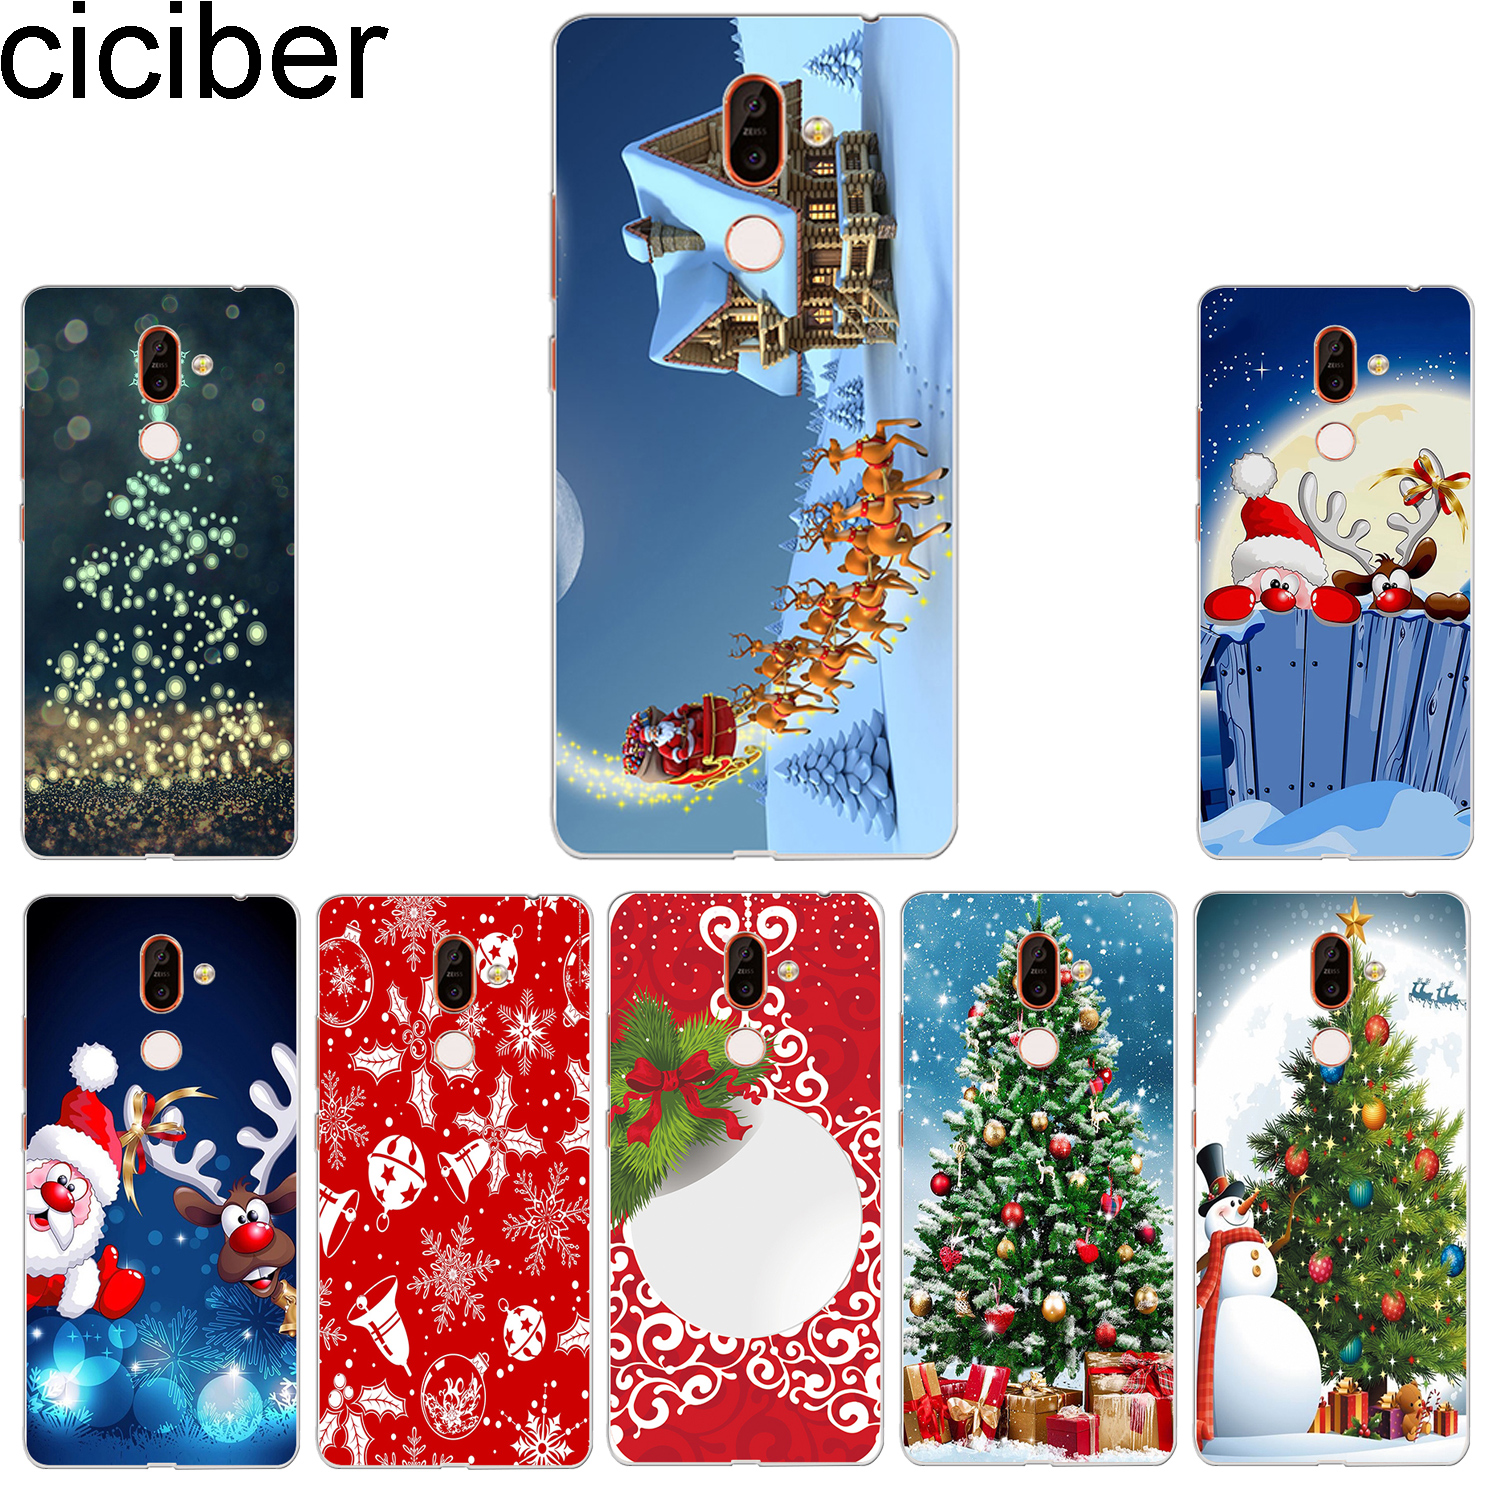 ciciber Merry Christmas Phone <font><b>Case</b></font> for <font><b>Nokia</b></font> 9 PureView 1 2 3 5 6 7 8 Sirocco Soft <font><b>Cover</b></font> for <font><b>Nokia</b></font> 2.1 3.1 5.1 <font><b>6.1</b></font> 7.1 8.1 <font><b>Plus</b></font> image